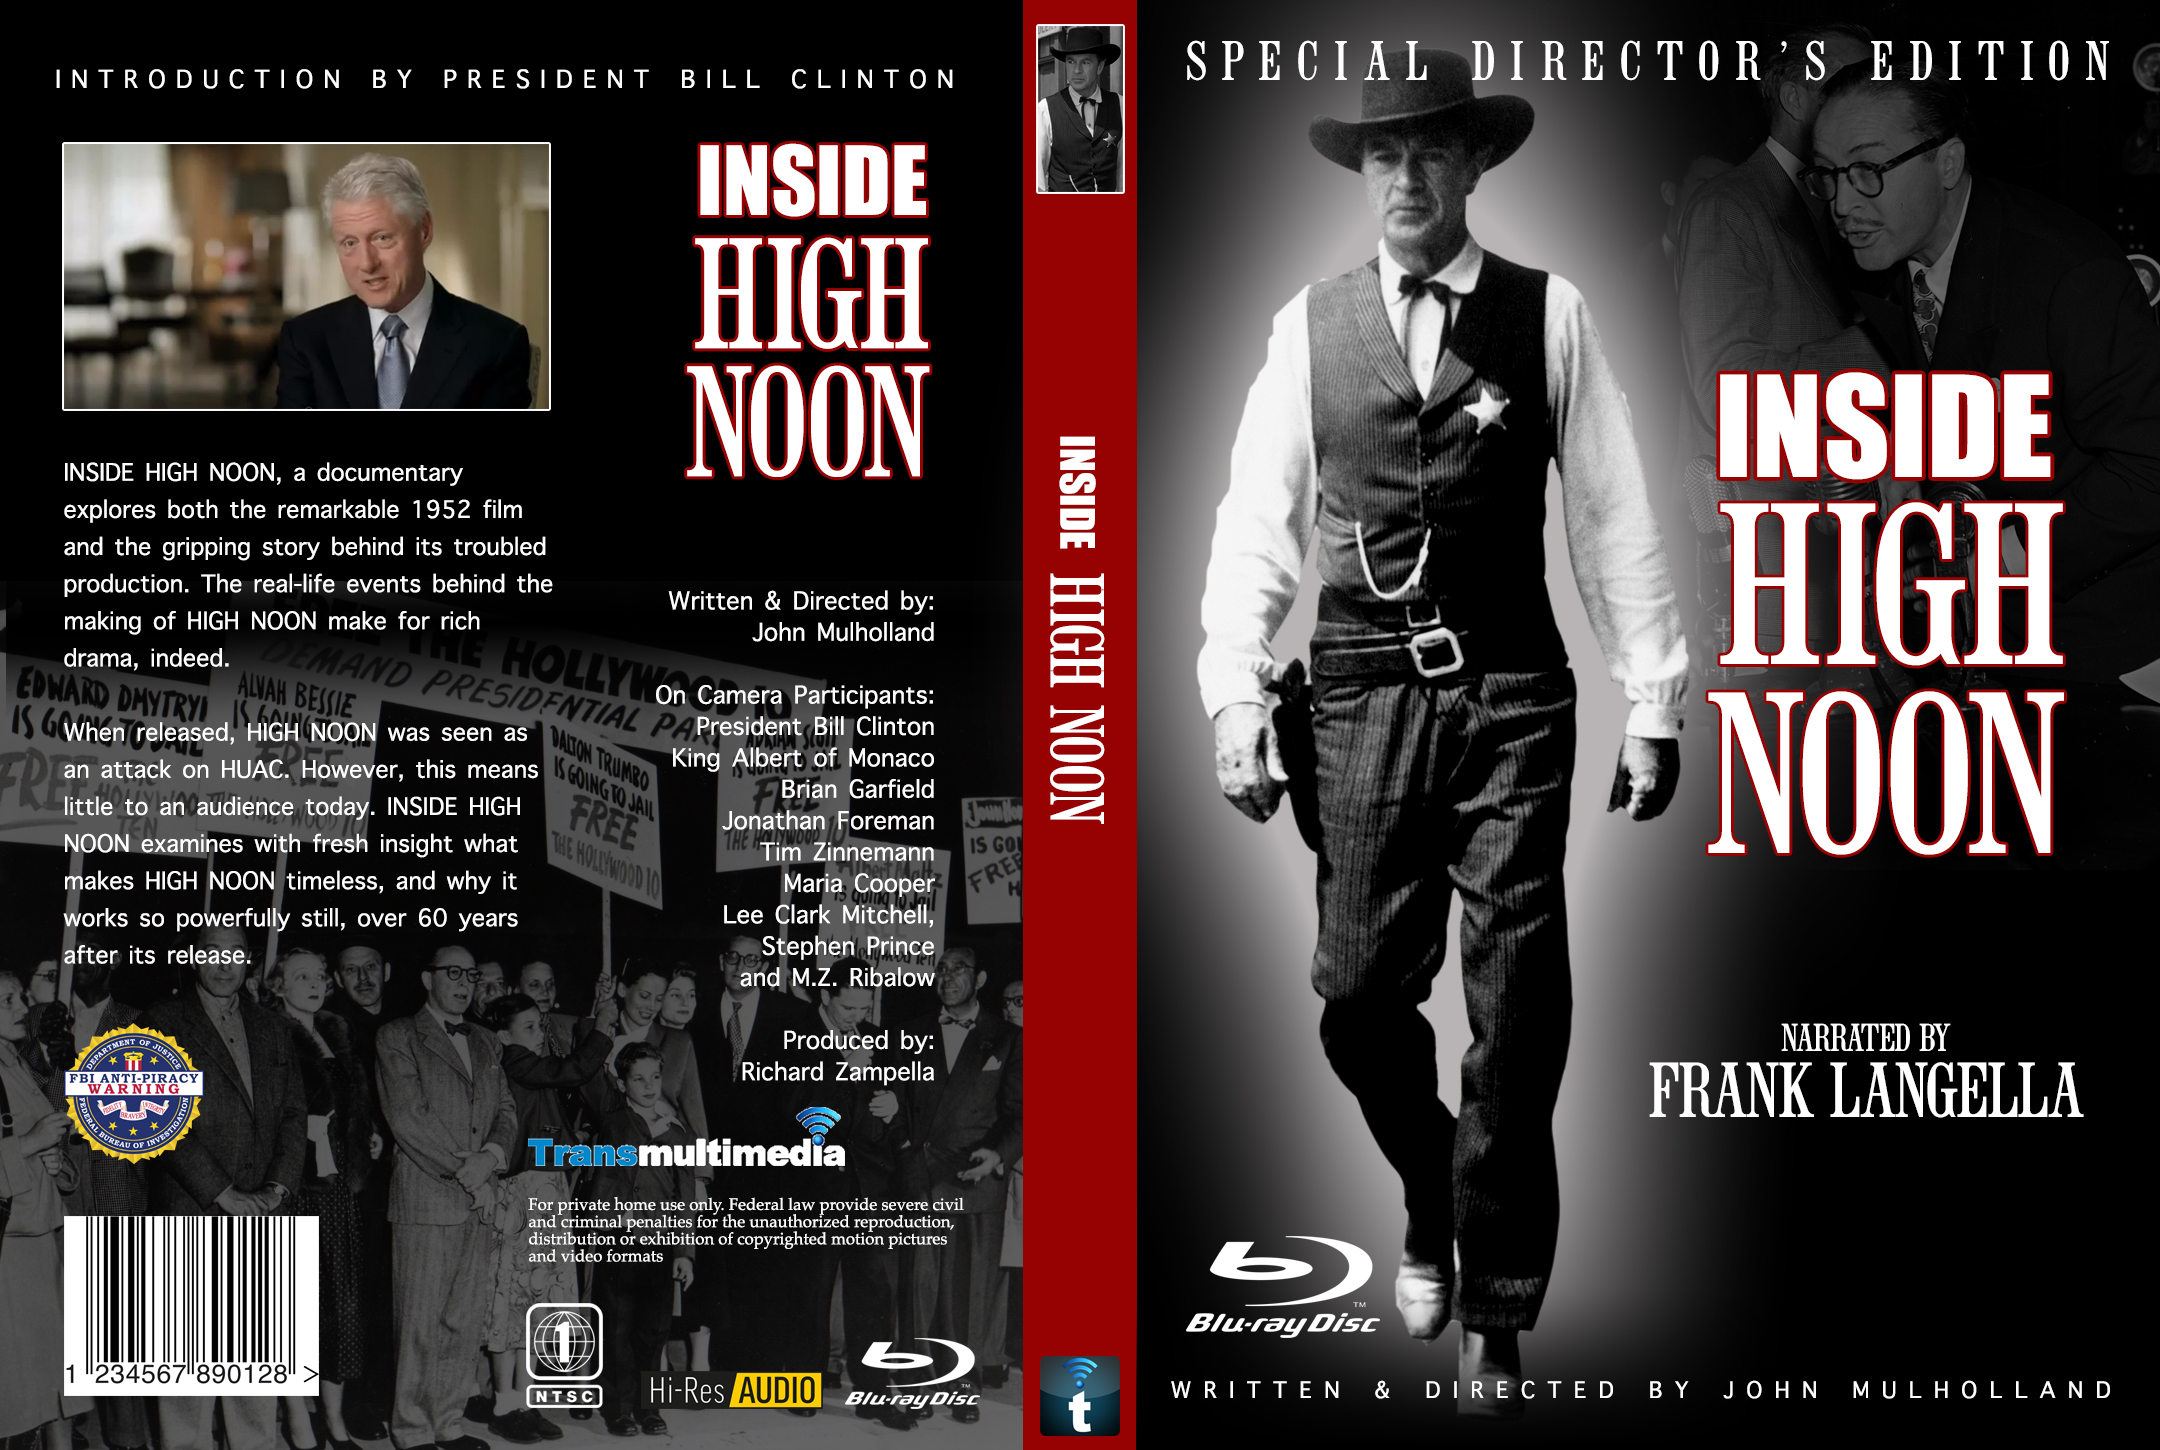 Coming Sooon: 'Inside High Noon' Directors Cut written & directed by John Mulholland